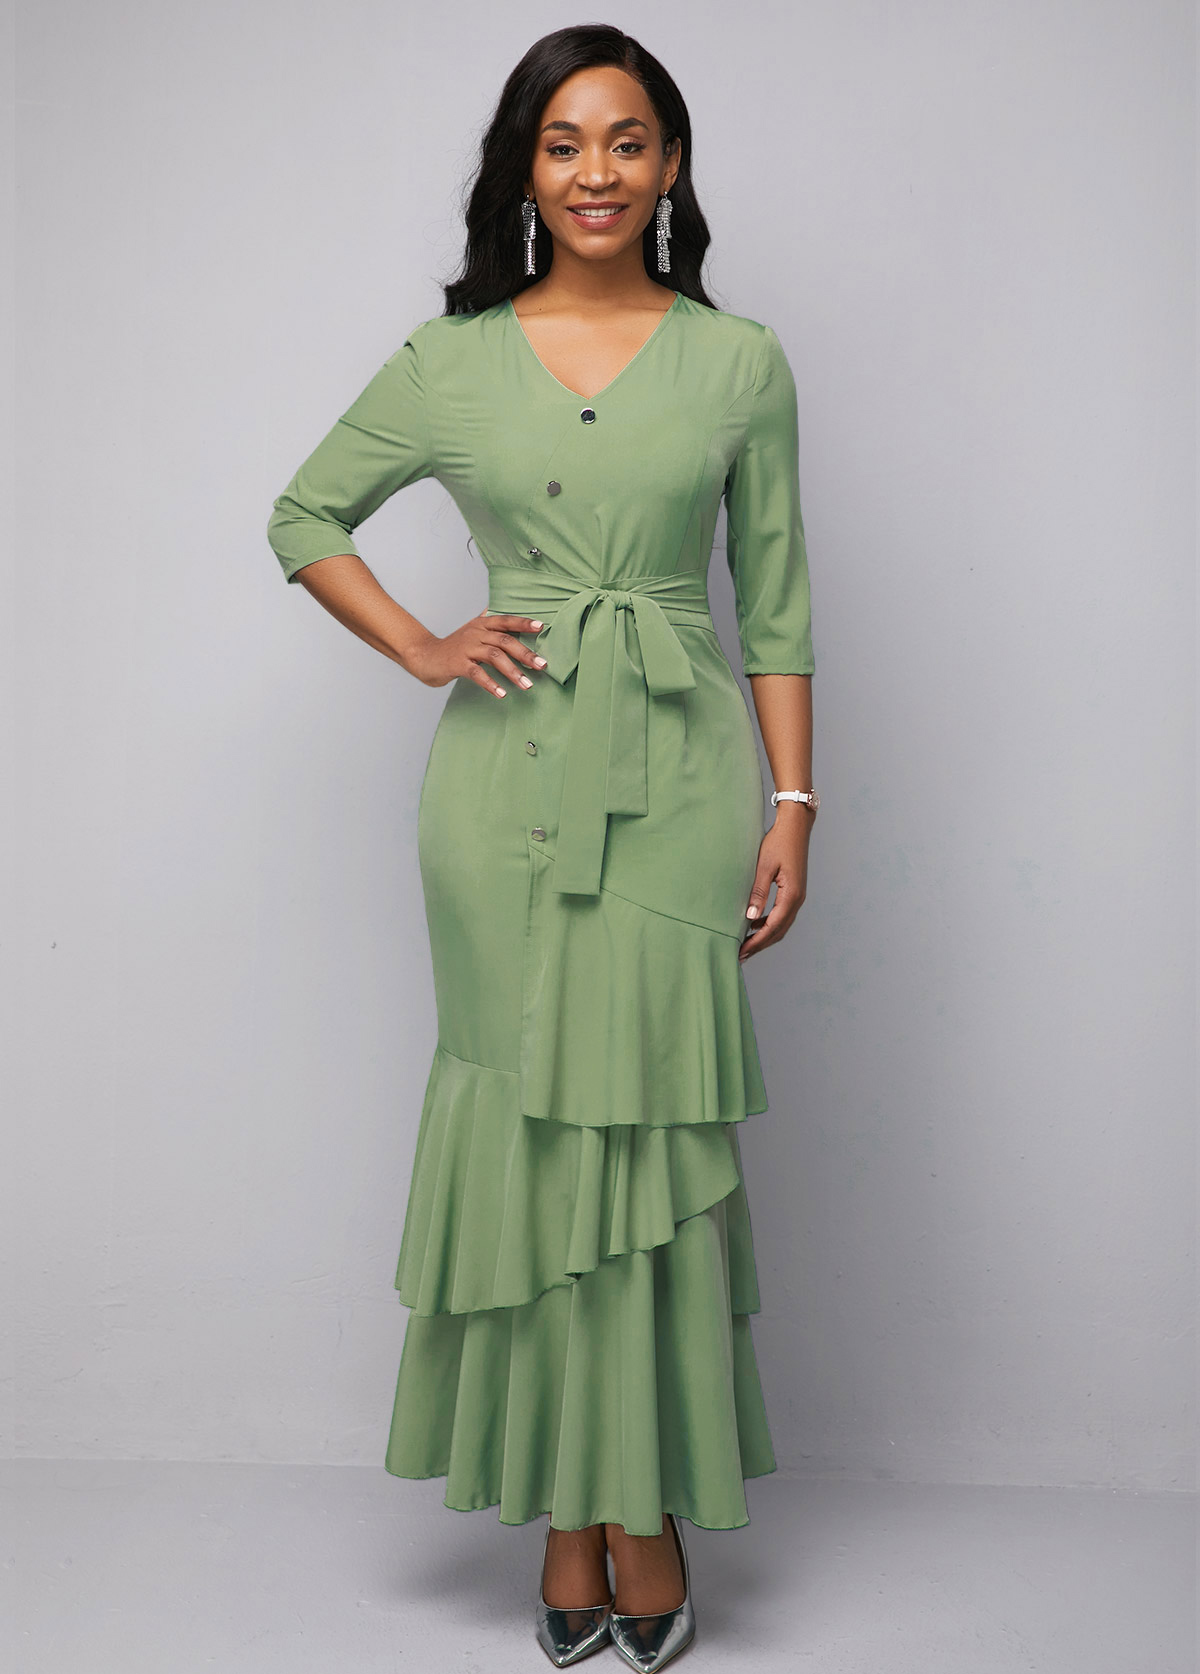 Button Detail V Neck Ruffle Hem Sage Green Chiffon Dress